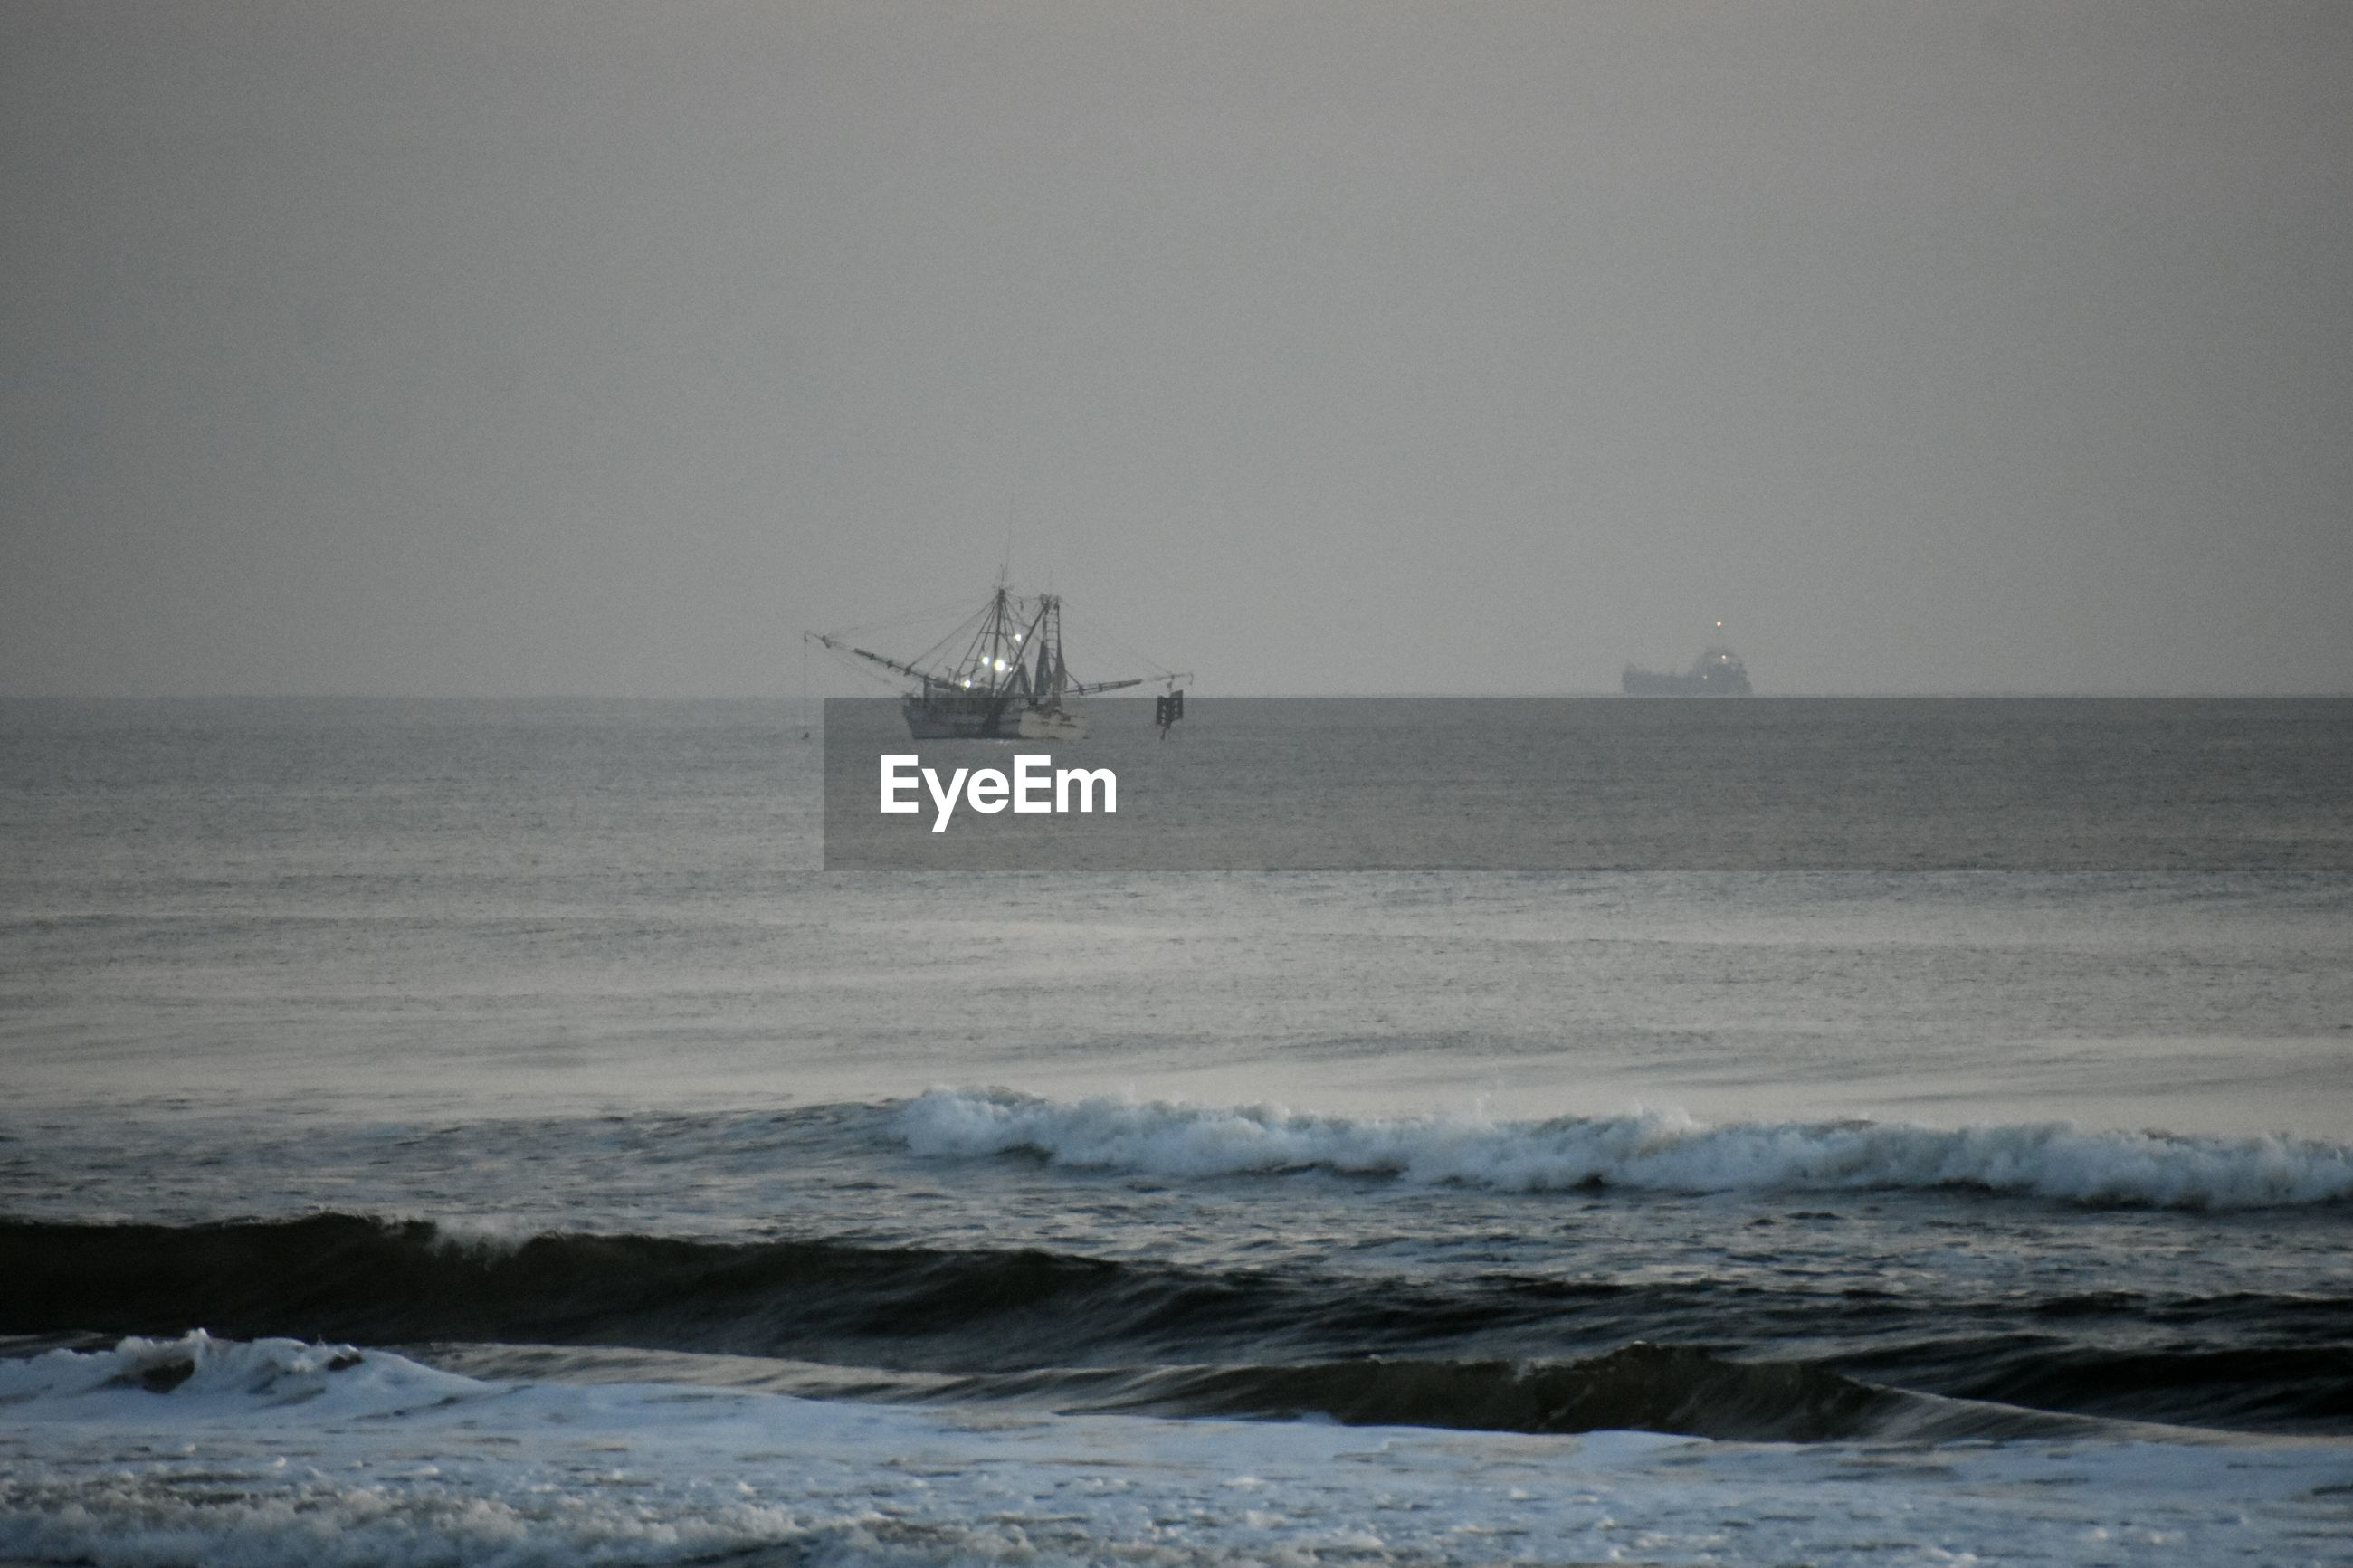 SHIP IN SEA AGAINST CLEAR SKY